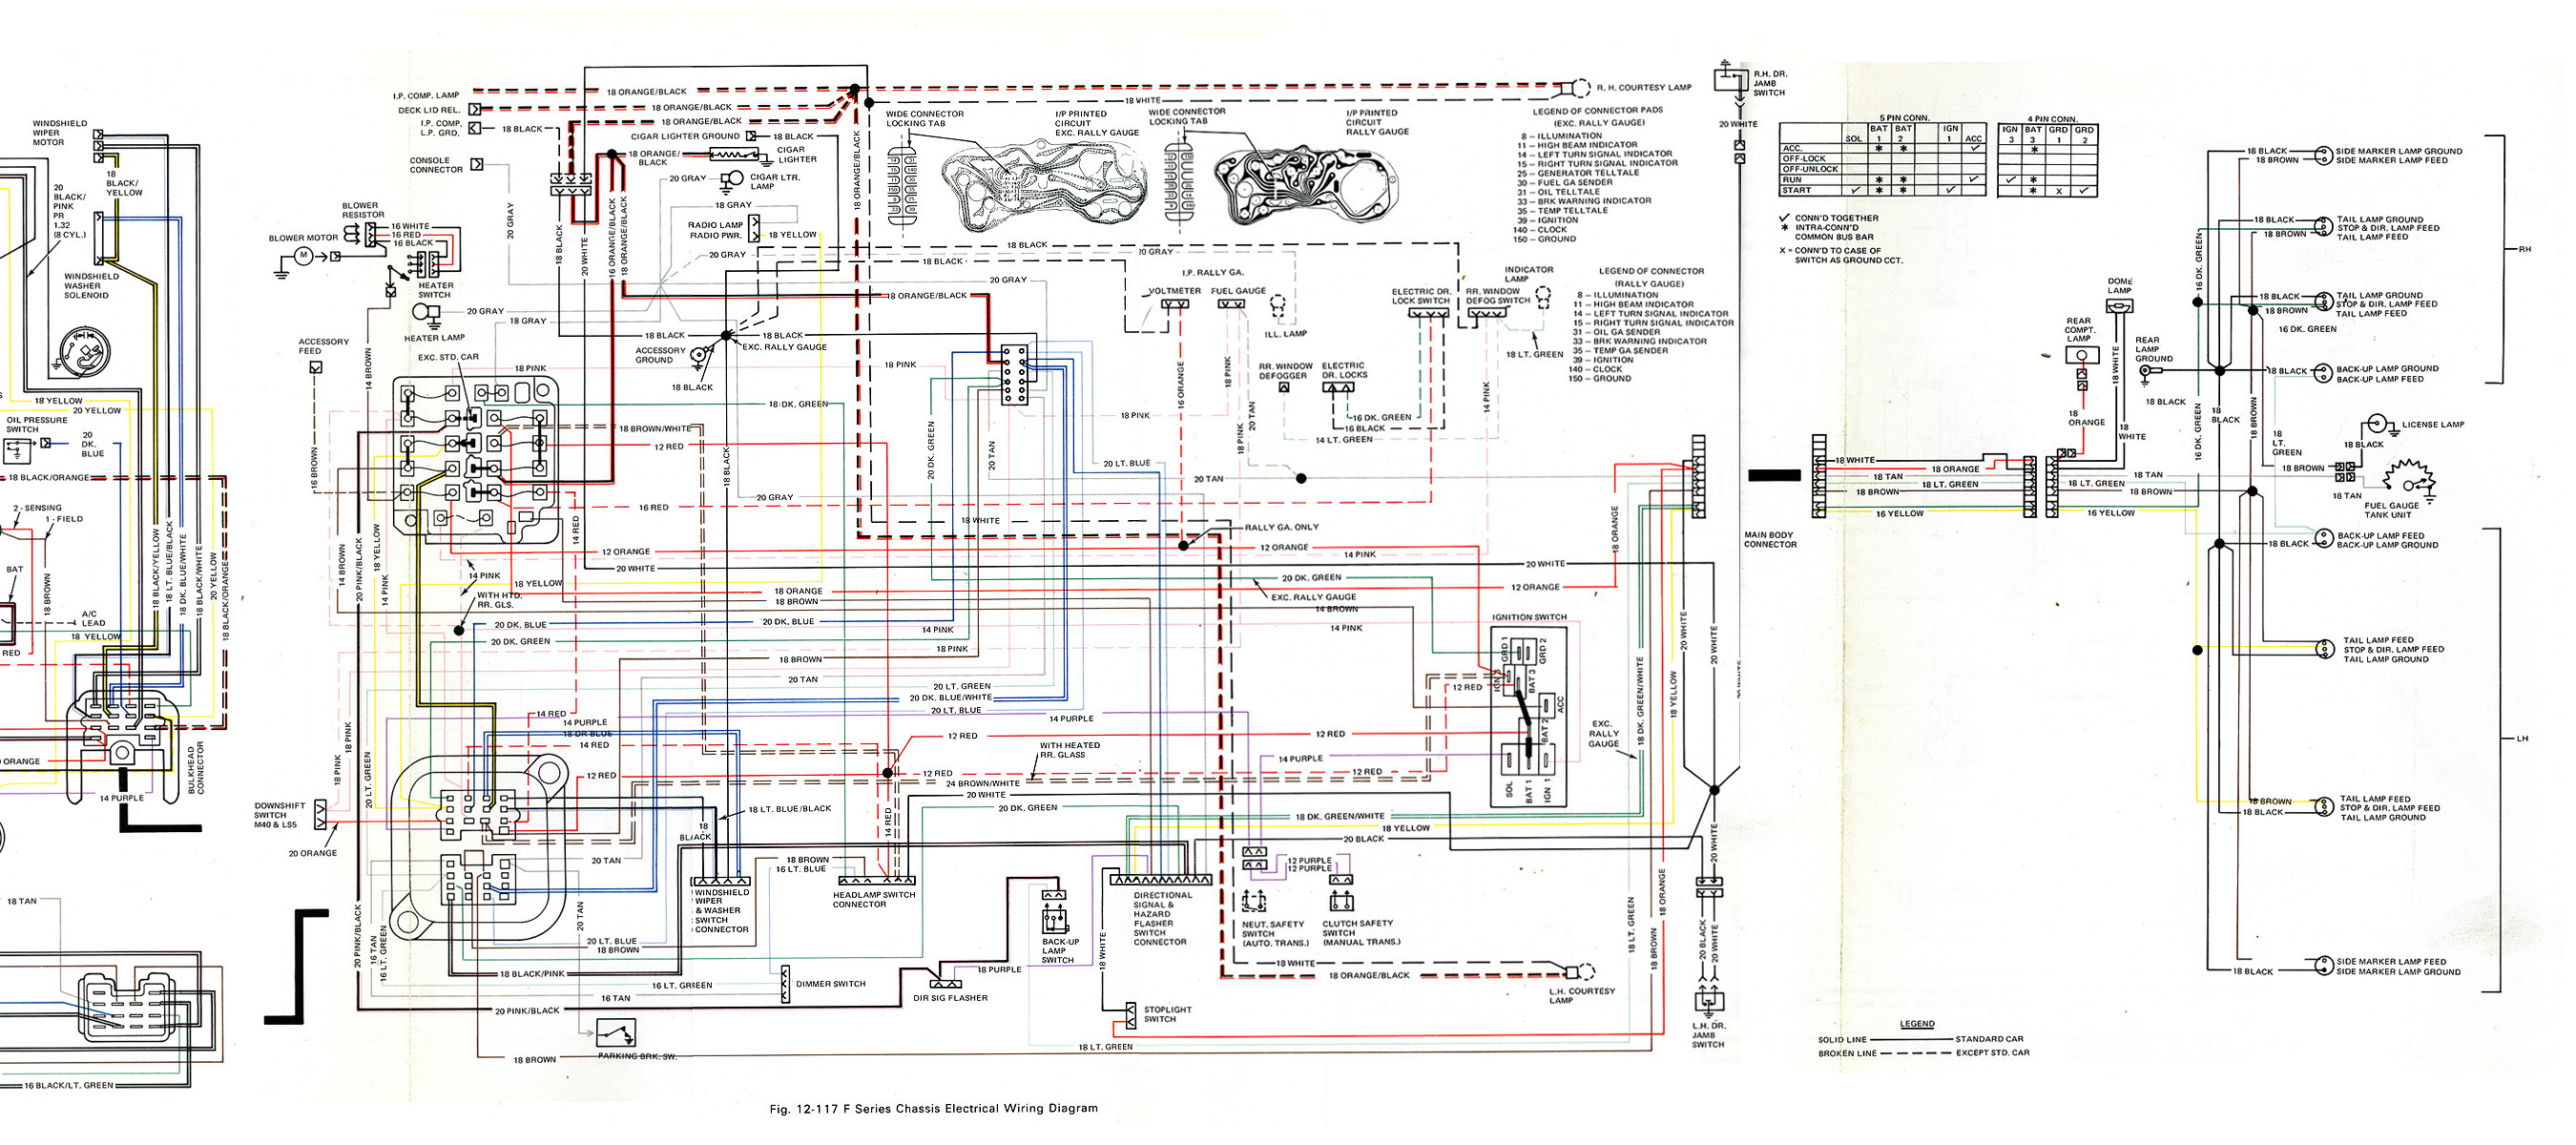 1973 pontiac firebird wiring diagram 1973 discover your wiring 1975 firebird wiring diagram 1975 wiring diagrams for car